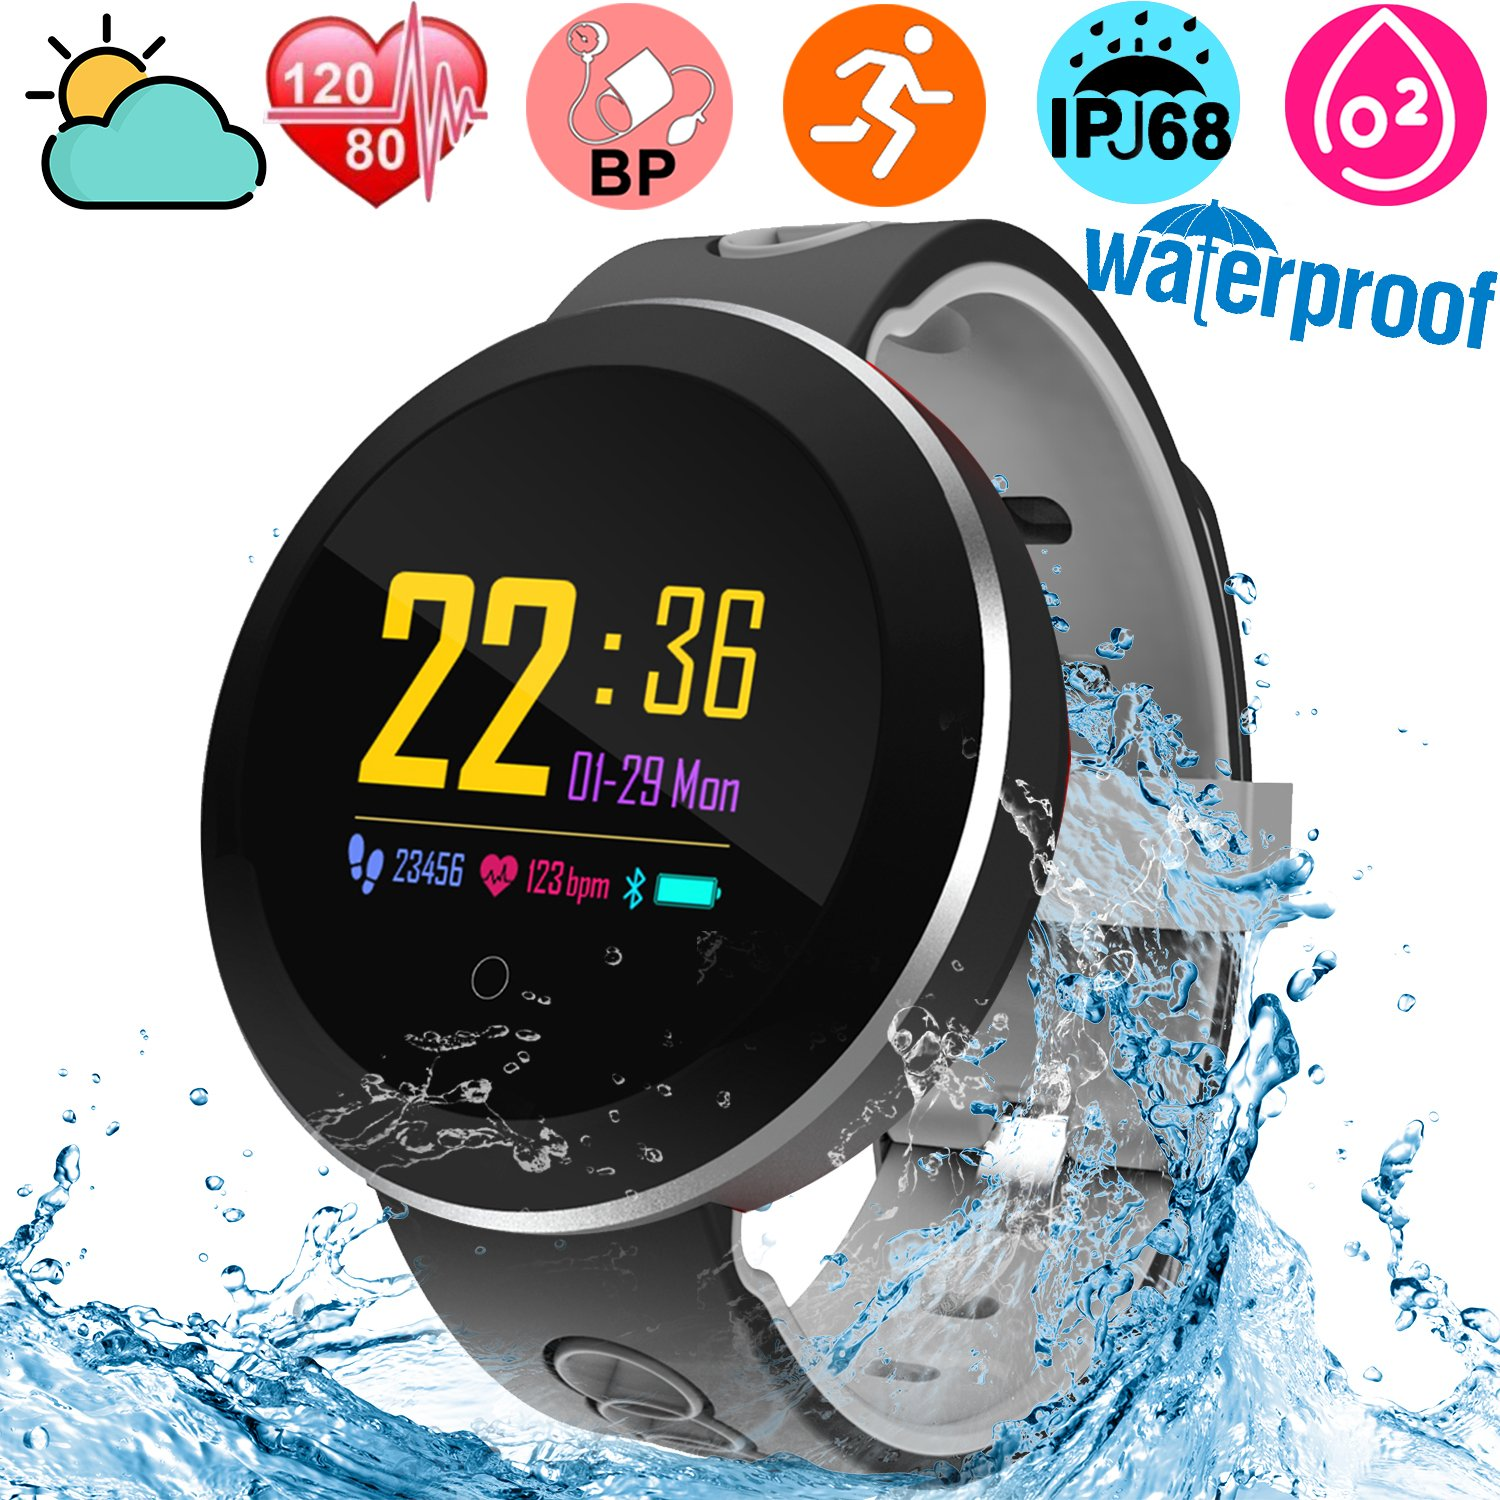 IP68 Waterproof Fitness Tracker Smartwatch for kids Men Women Swimming Heart Rate Blood Pressure Oxygen Sleep Monitor GPS Activity Tracker Pedometer Color Screen Outdoor Sport Bracelet for Android iOS by JingStyle (Image #1)